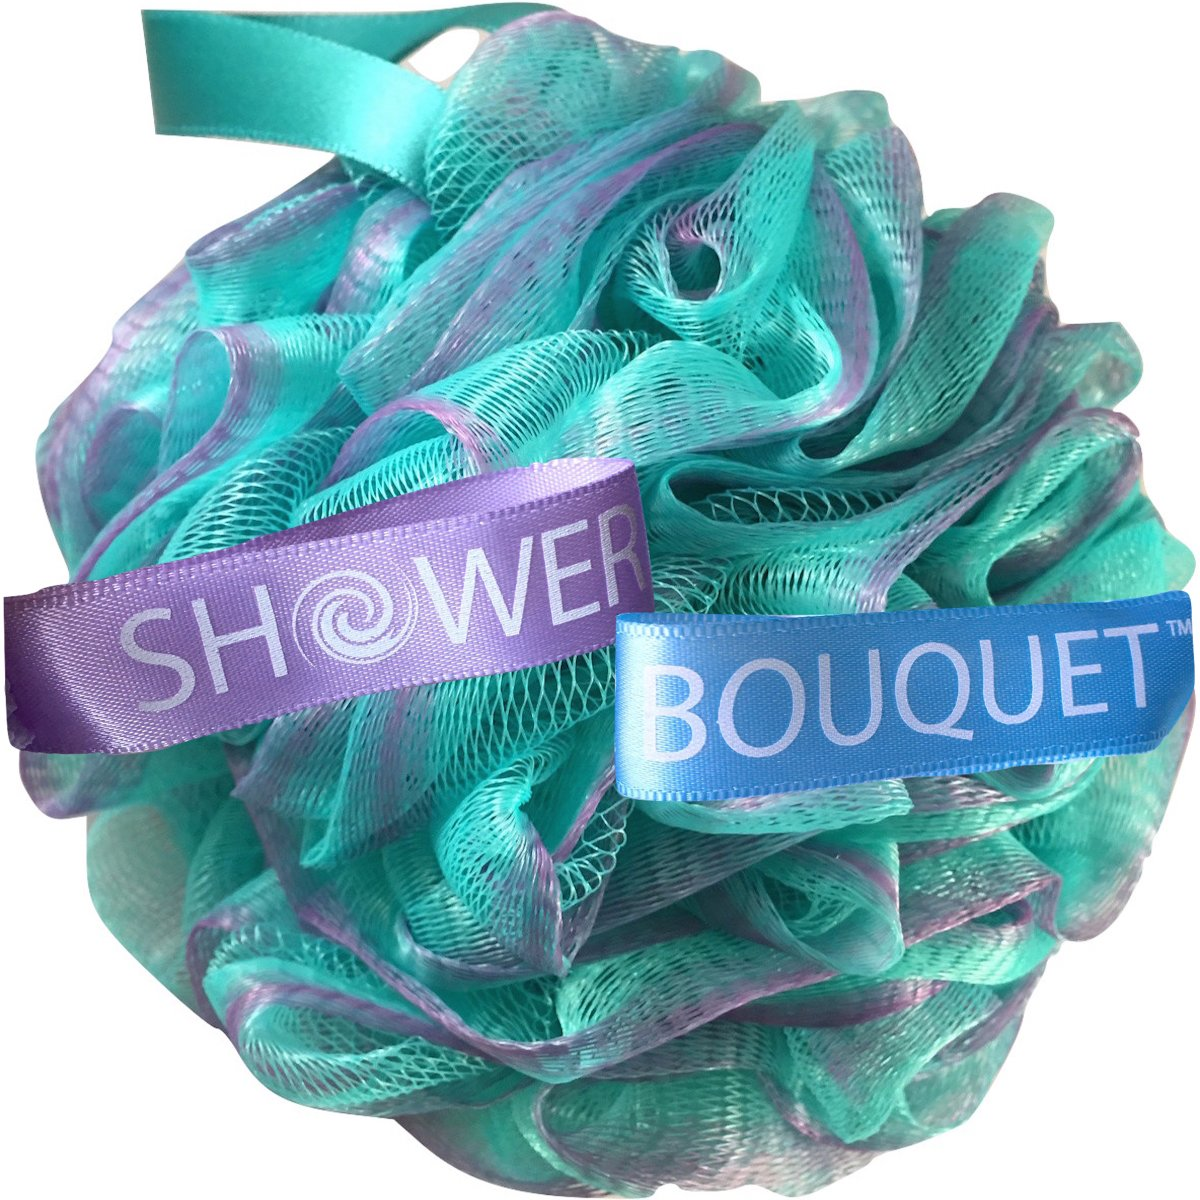 Loofah Bath-Sponge Swirl-Set-XL-75g by Shower Bouquet: Extra-Large Mesh Pouf (4 Pack Color Swirls) Luffa Loofa Loufa Puff Scrubber - Big Full Lather Cleanse, Exfoliate with Beauty Bathing Accessories: Beauty